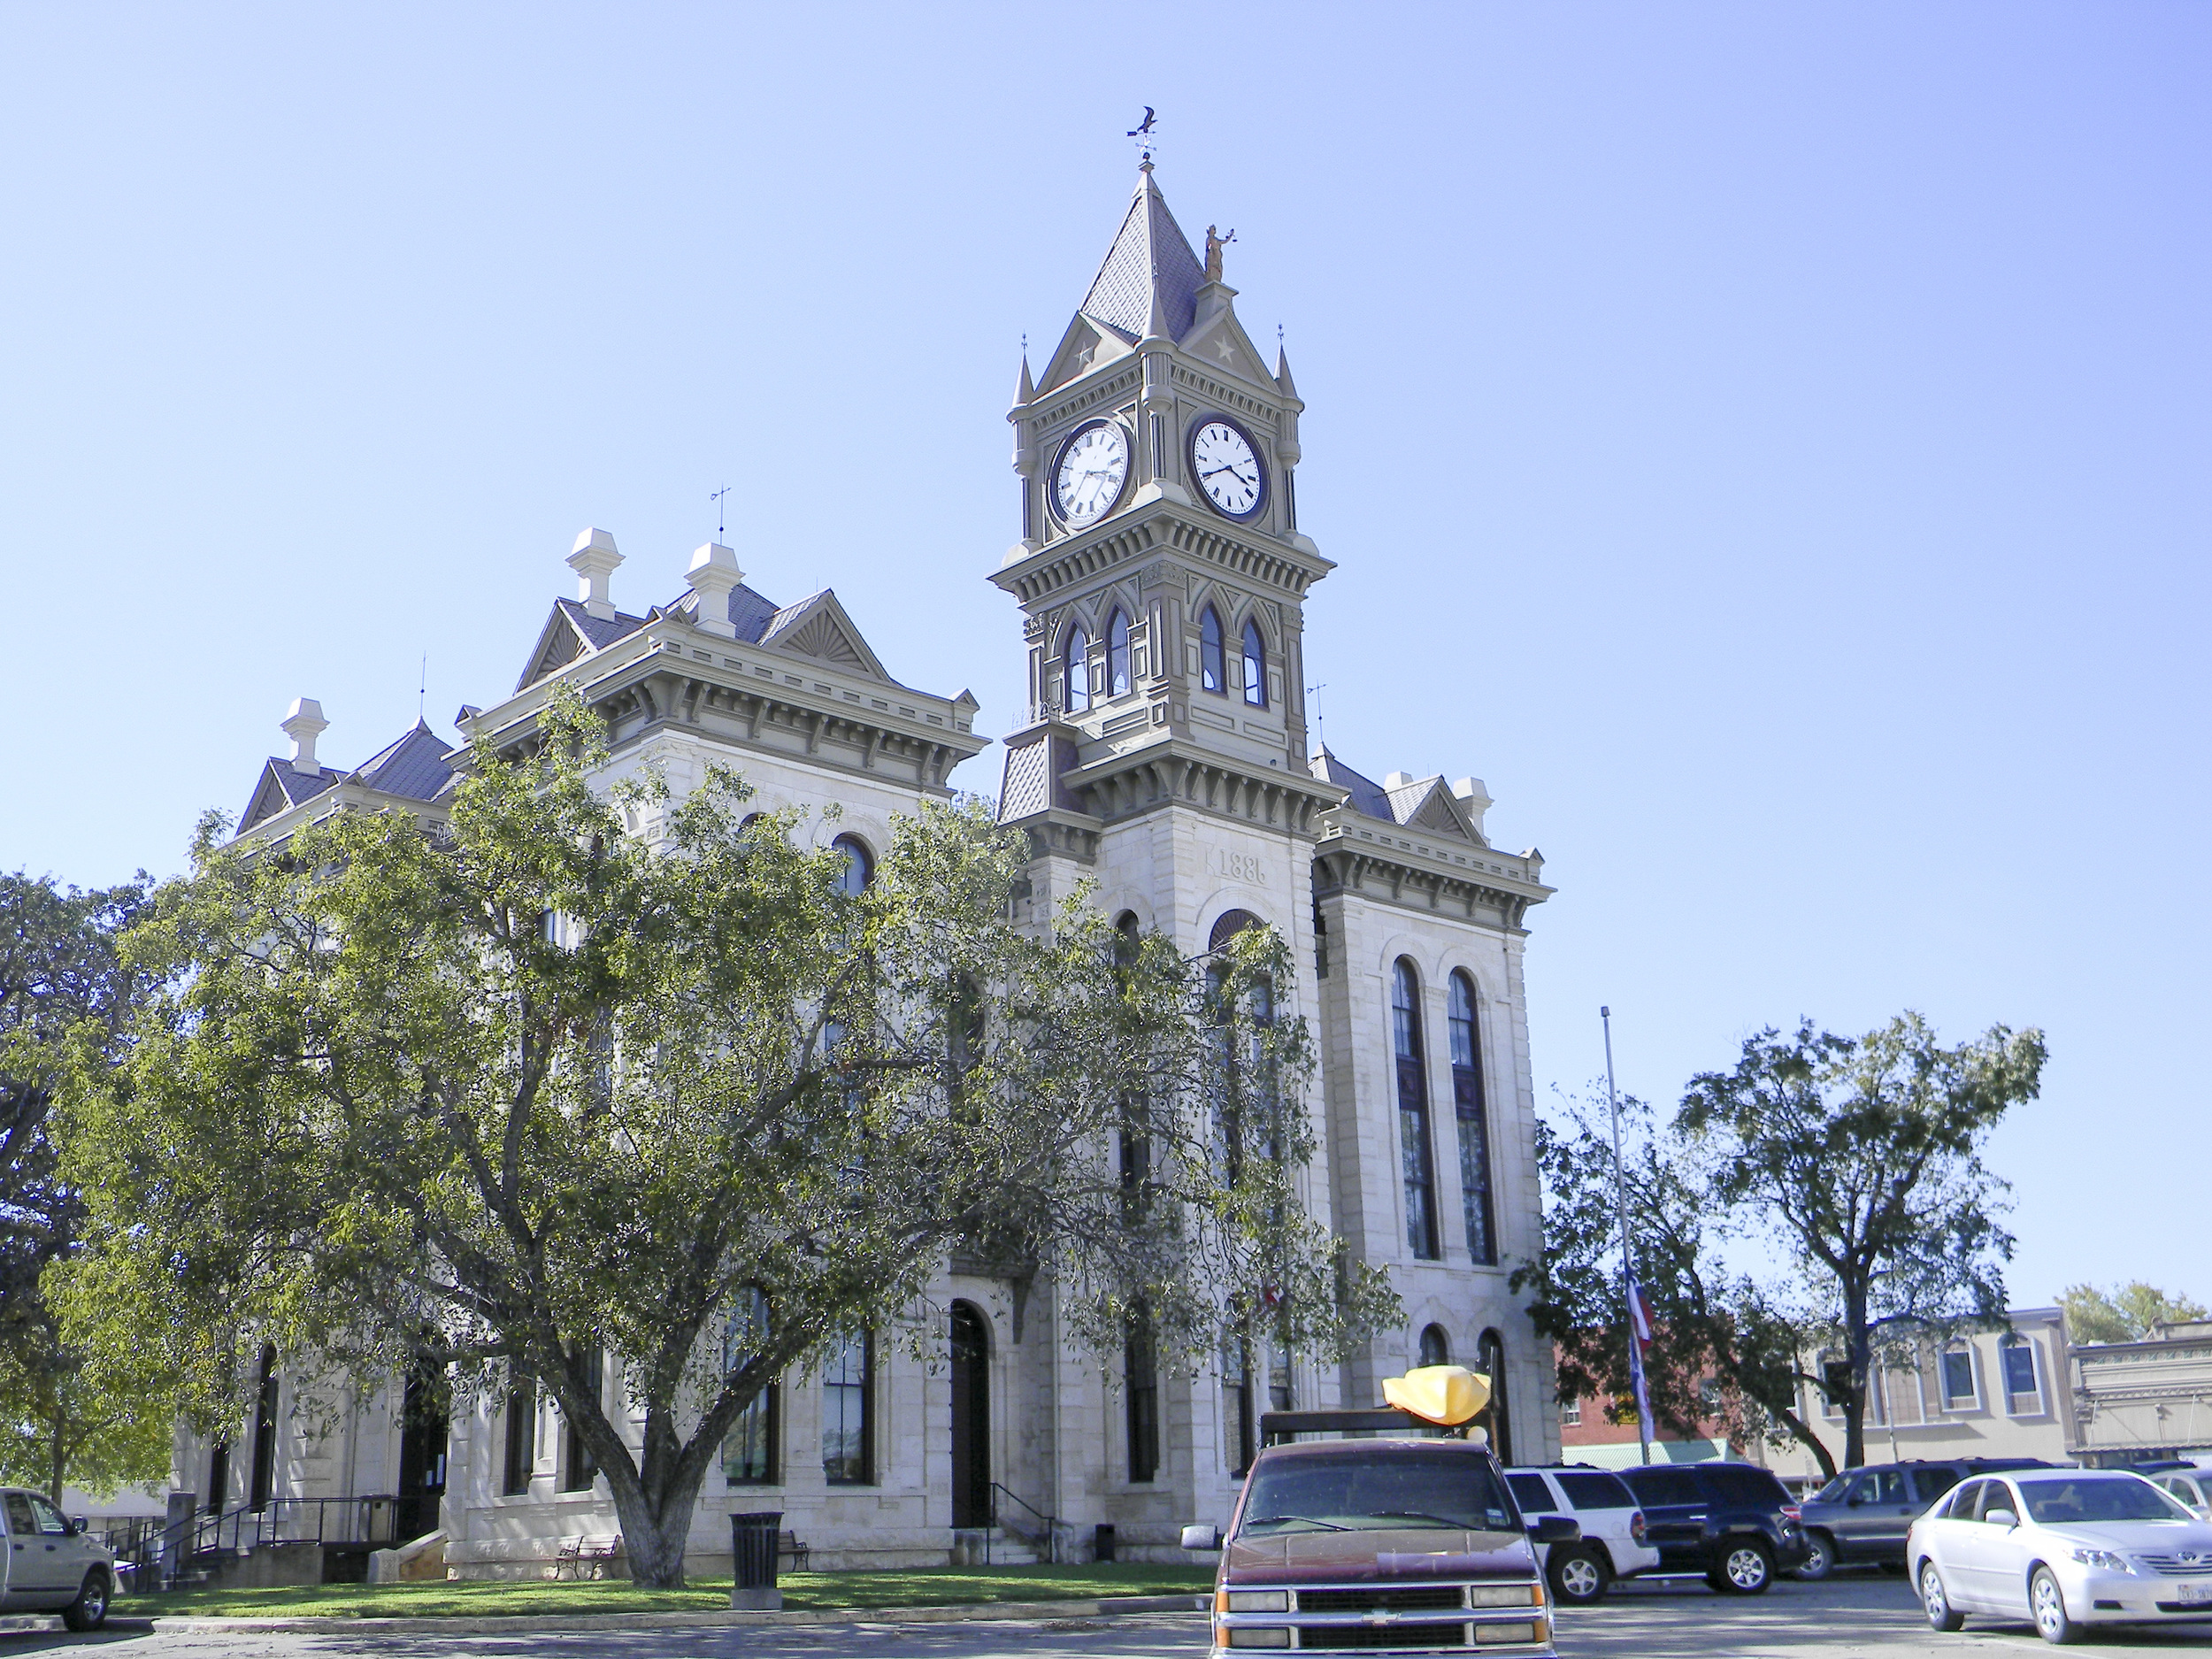 SAC_TX_BOSQUE_MERIDIAN_courthouse_4-2012-Oct18.jpg